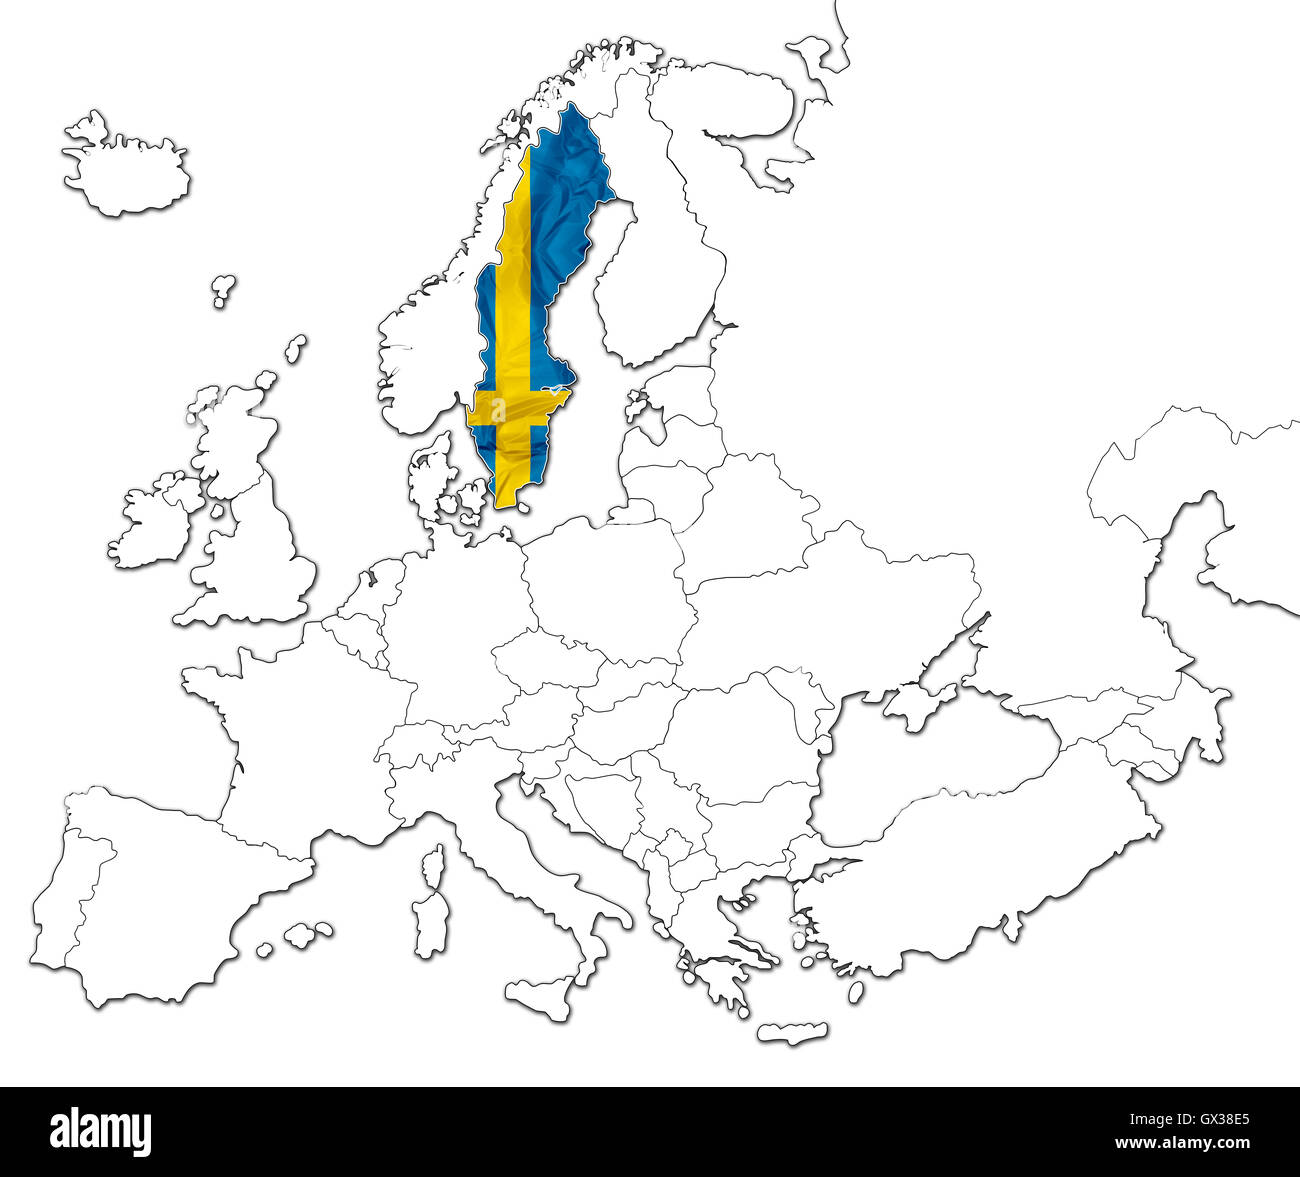 Map Of Sweden Stock Photo Royalty Free Image Alamy - Sweden map search